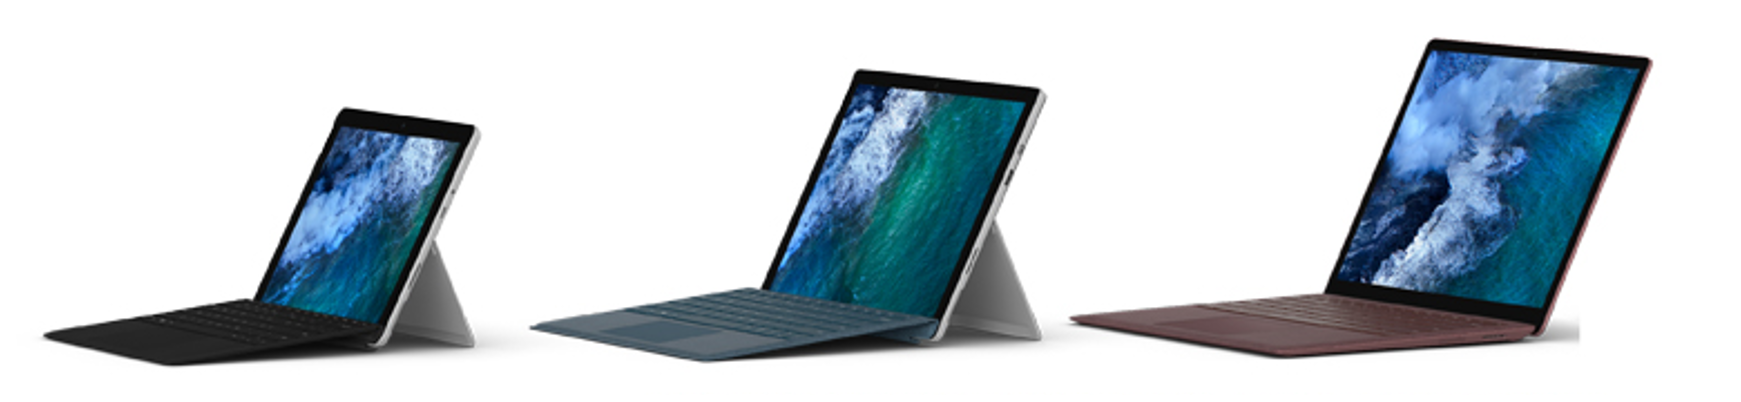 Photograph of Microsoft Surface devices.